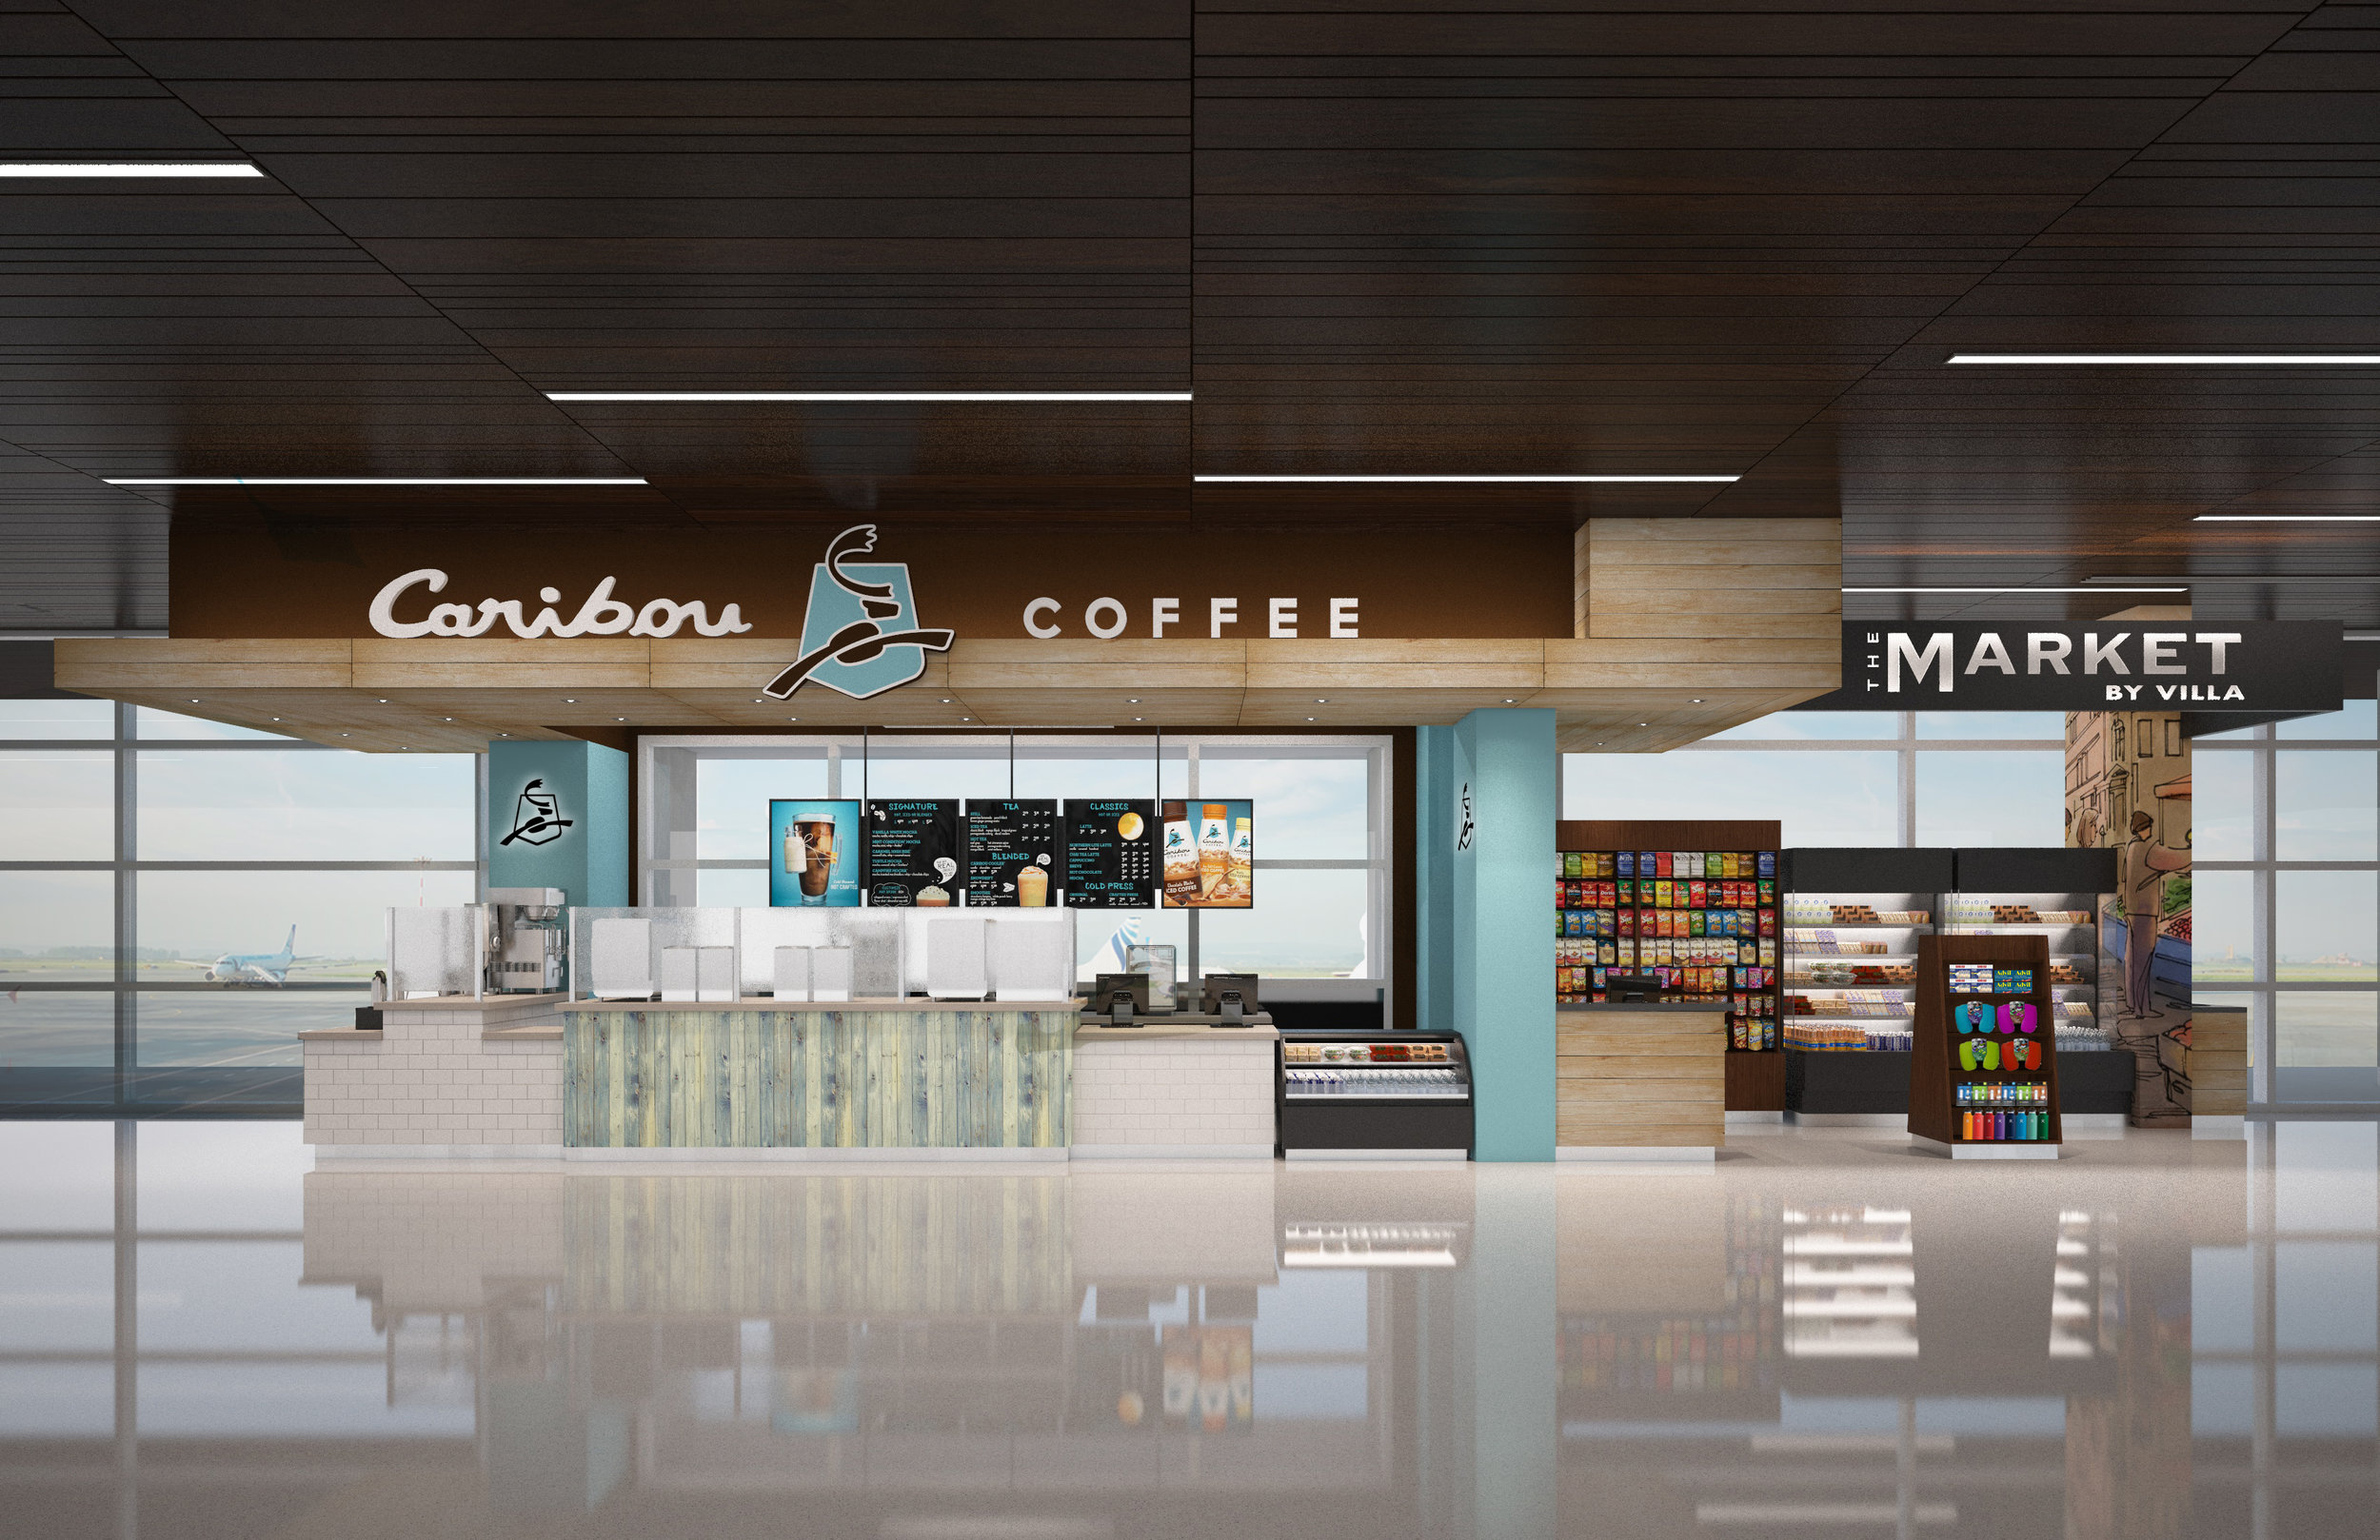 BN1375-T3P-F1 Caribou Coffee The Market 04_Camera F1 Front_a.jpg